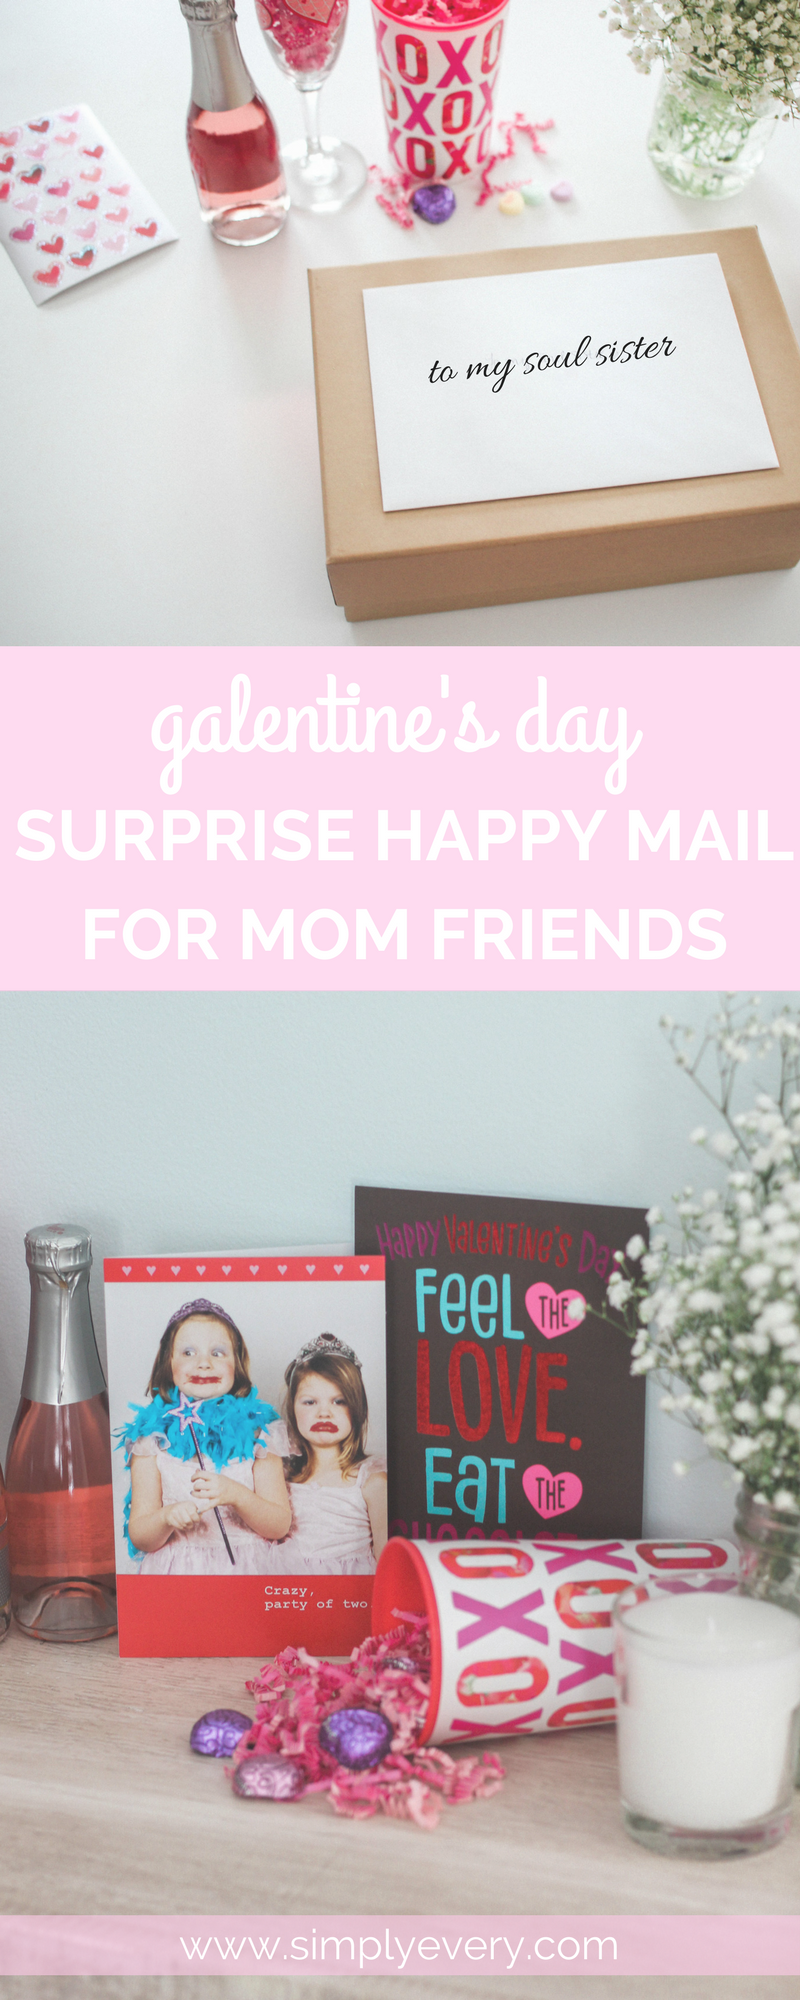 Surprise Happy Mail for Mom Friends